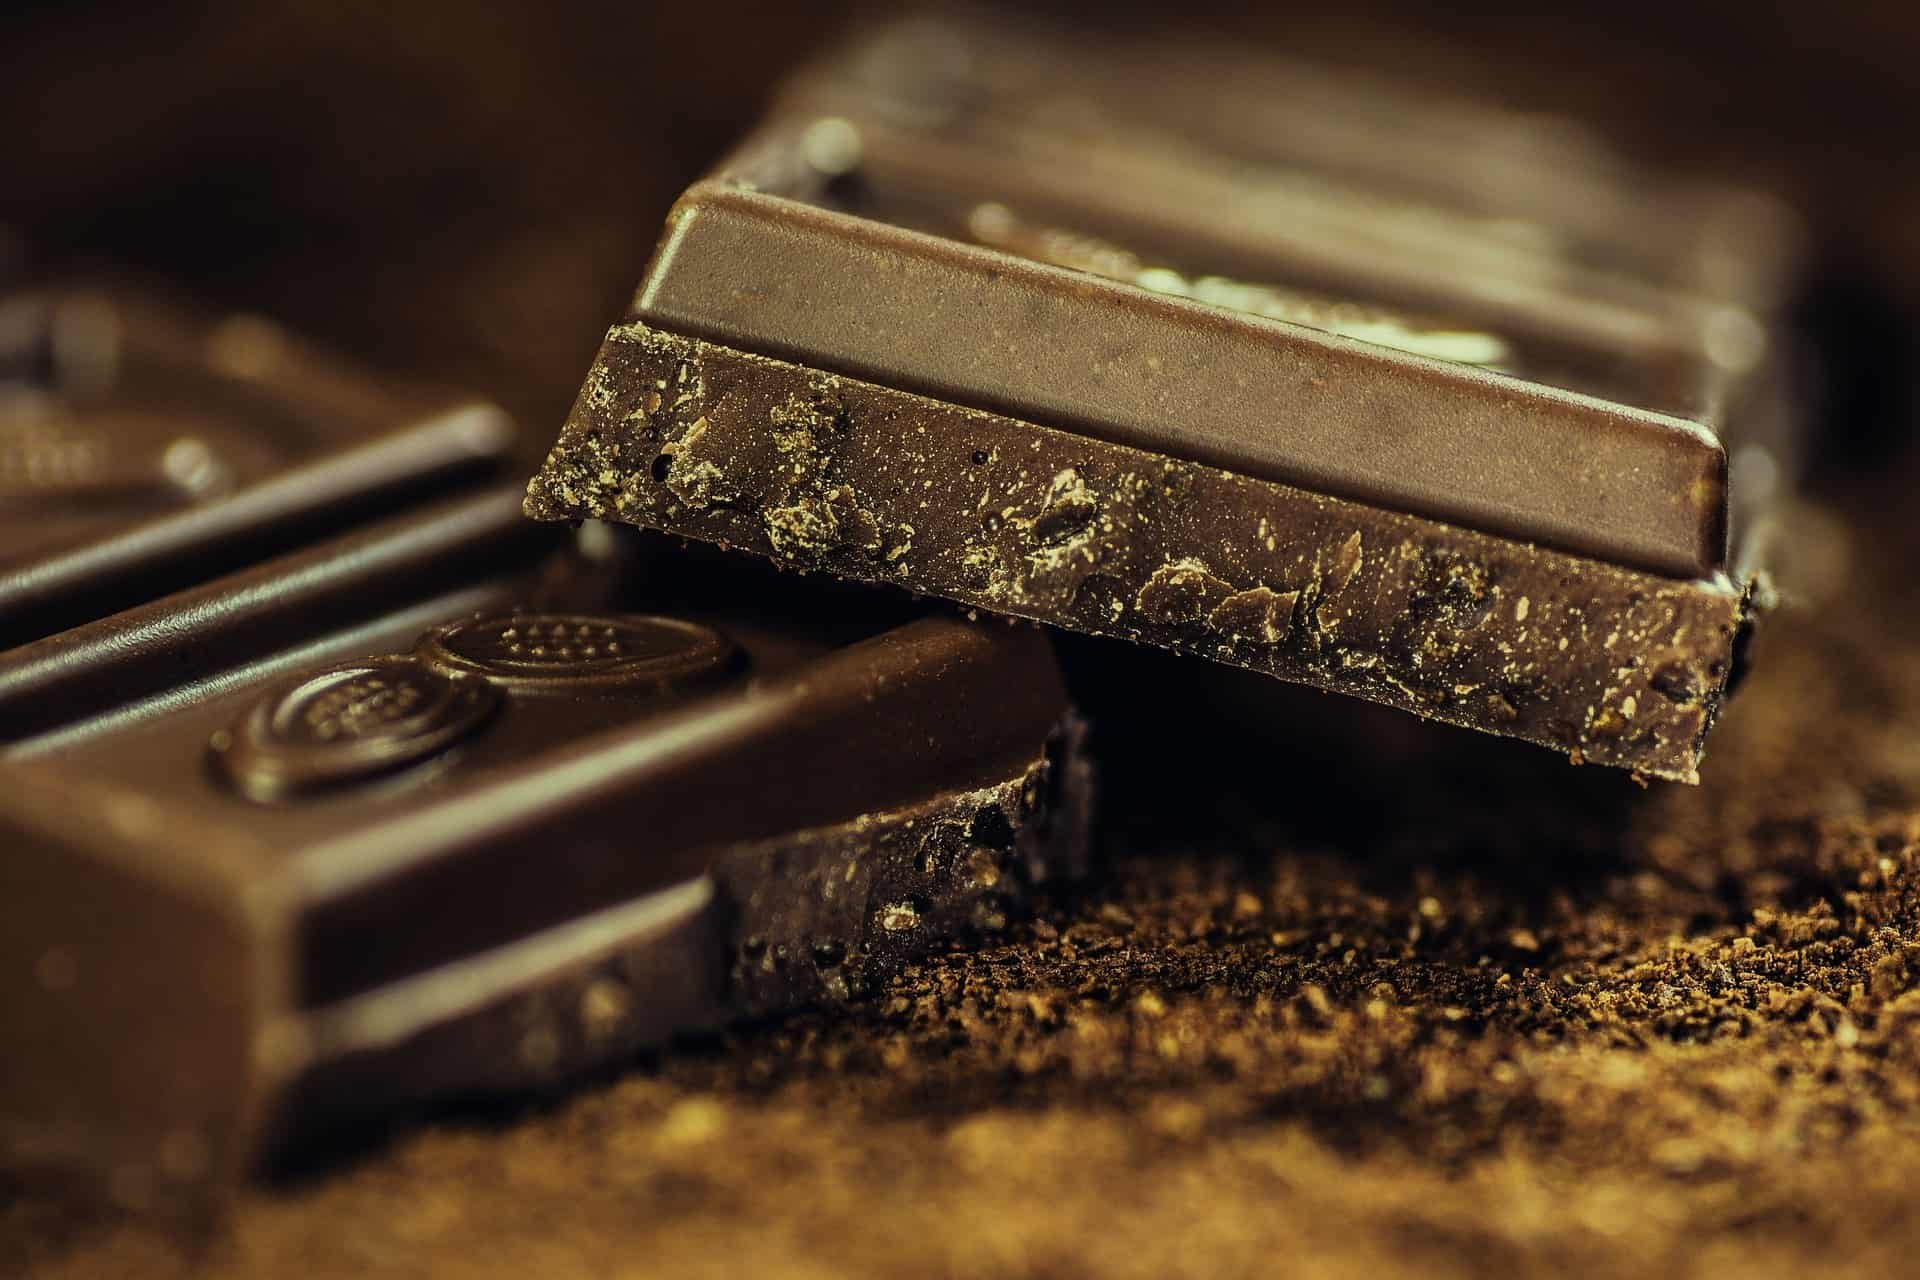 Dark Chocolate kills your hunger cravings